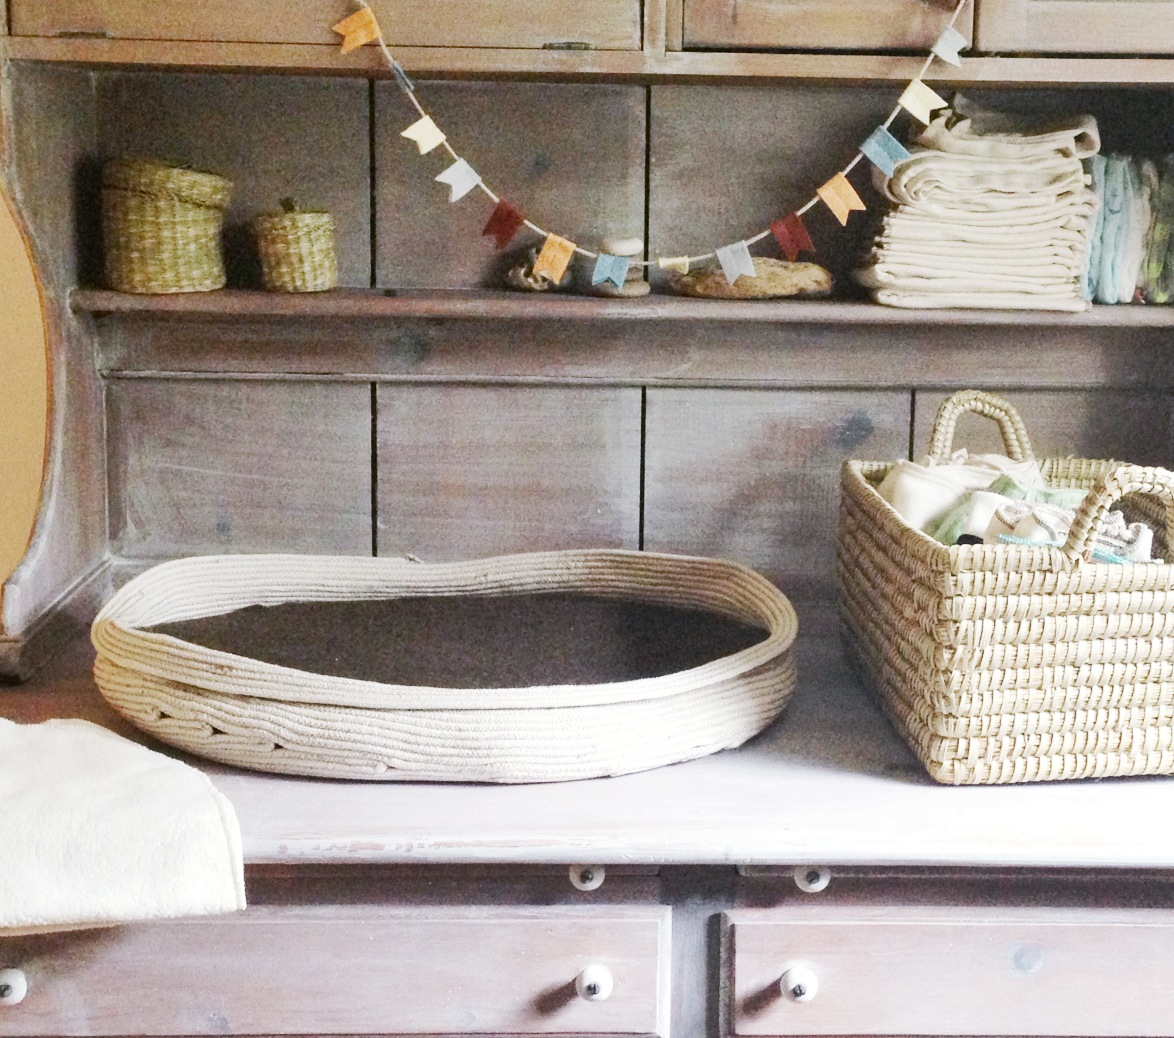 Diy Rope Craft Projects To Do At Home: Tutorial: Make Your Own Rope Basket : Going Home To Roost